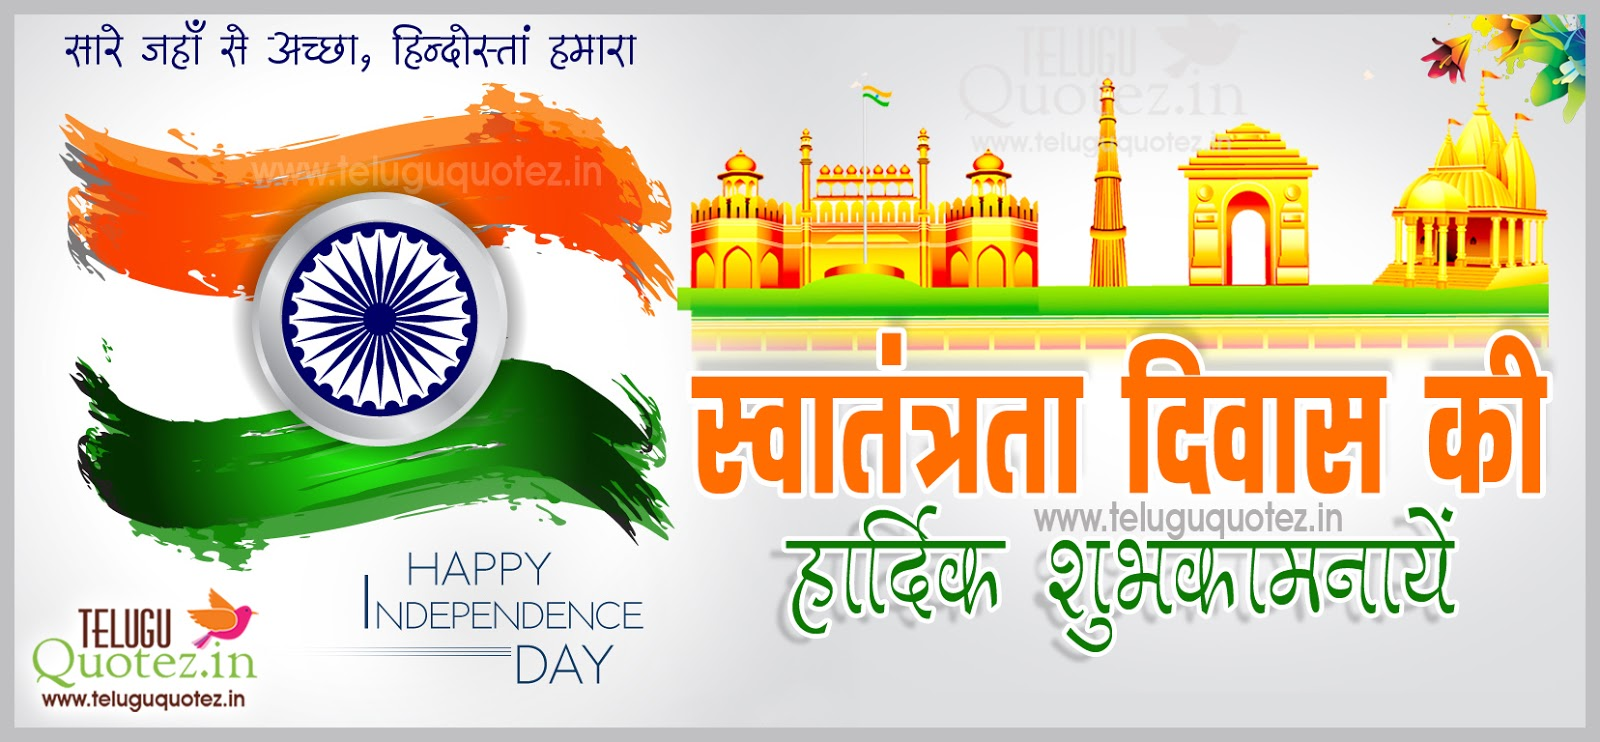 independence day 15 august in hindi language Lifestyle news – get all the title independence day 2018: history and  importance, celebration of 72nd indian independence day '15th august 2018'   india proudly stood free from british rule on 15th august 1947 and the  the app  millennials are using to learn a language in 20 minutes a daybabbel.